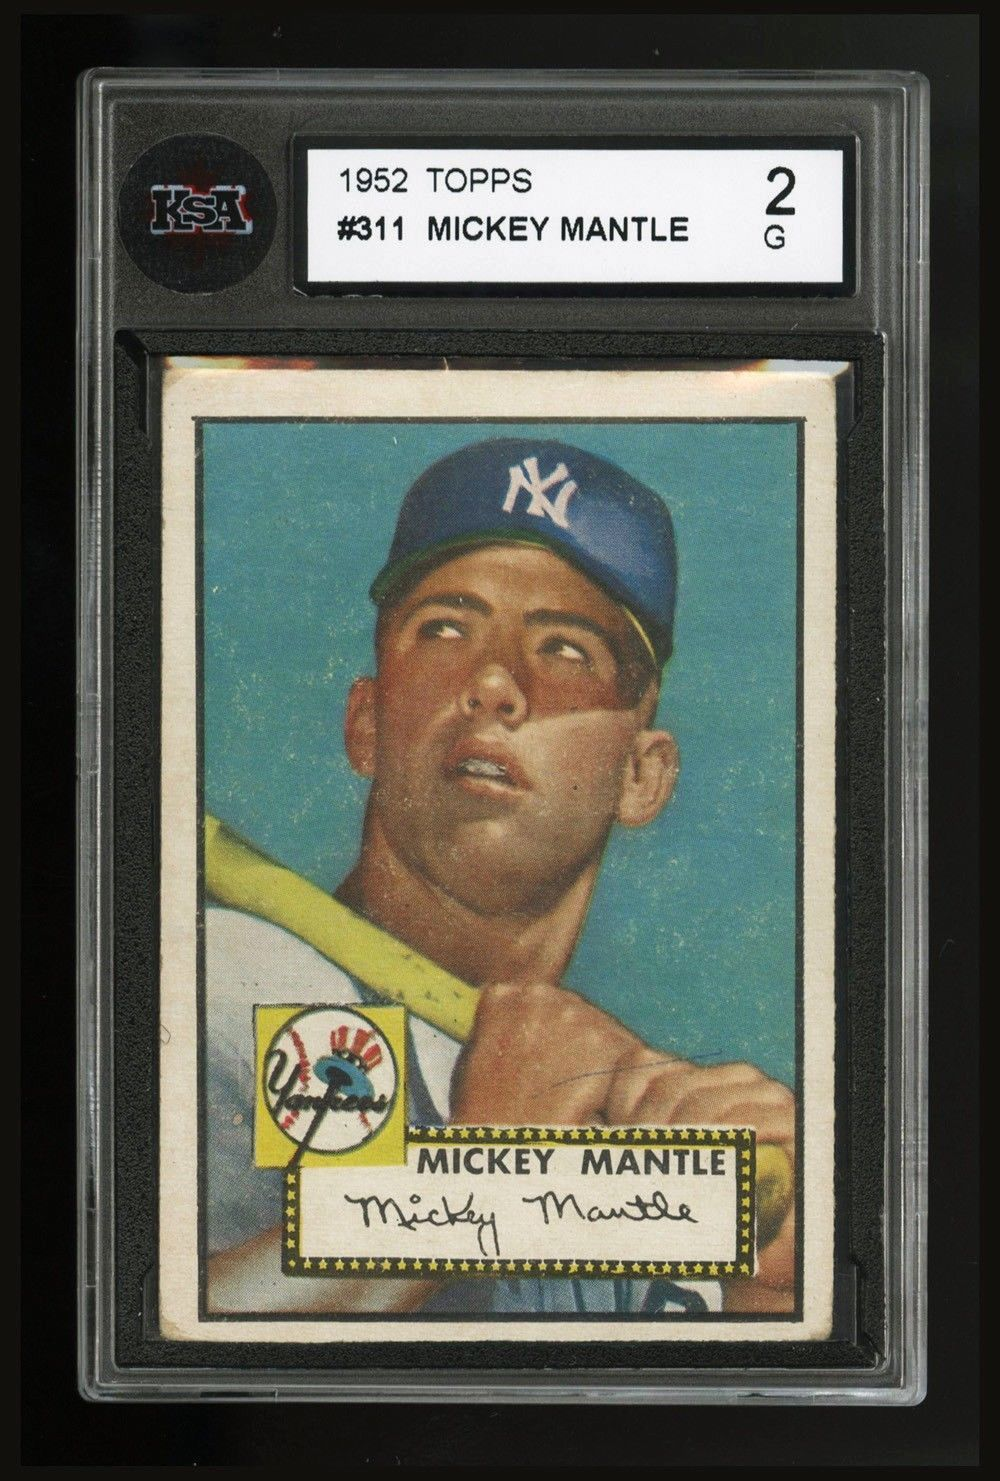 1952 topps 311 mickey mantle first topps card ny yankees